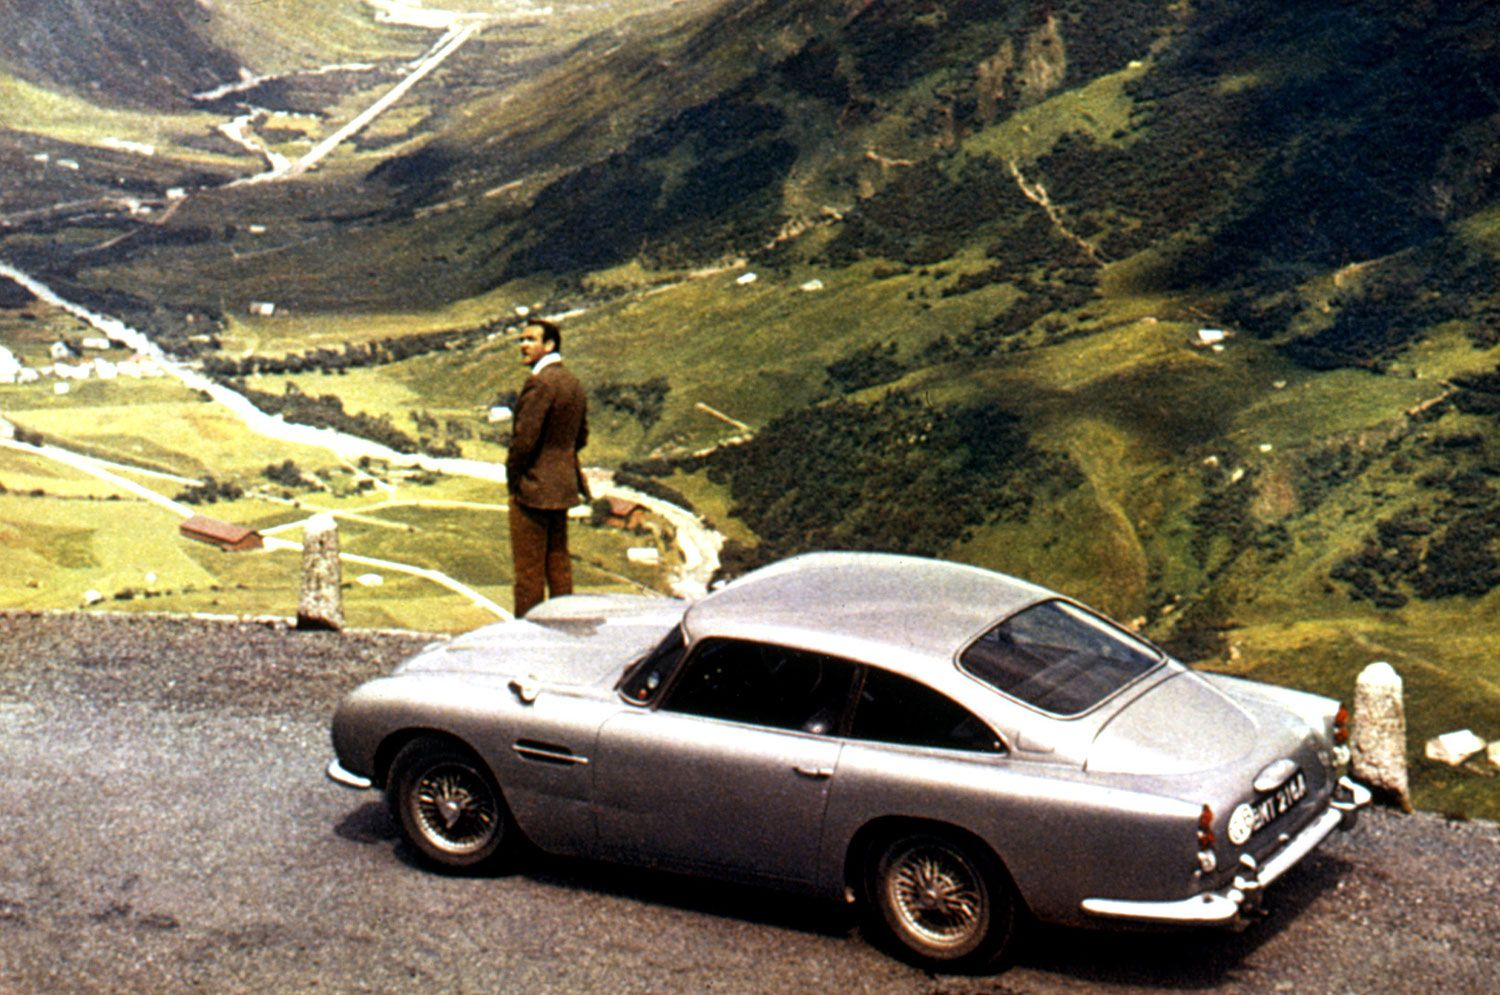 Goldfinger (1964) - Aston Martin DB5 - The Driver: Connery originated the role with charm and Savile Row swagger and, to many, has never been surpassed.The Car: In silver-birch, the DB5 debuted with as much British style as Bond himself, plus some guns in the grill. Similarly unsurpassed.The Evolutionary Leap: Bond's first Aston, and the franchise's first icon.